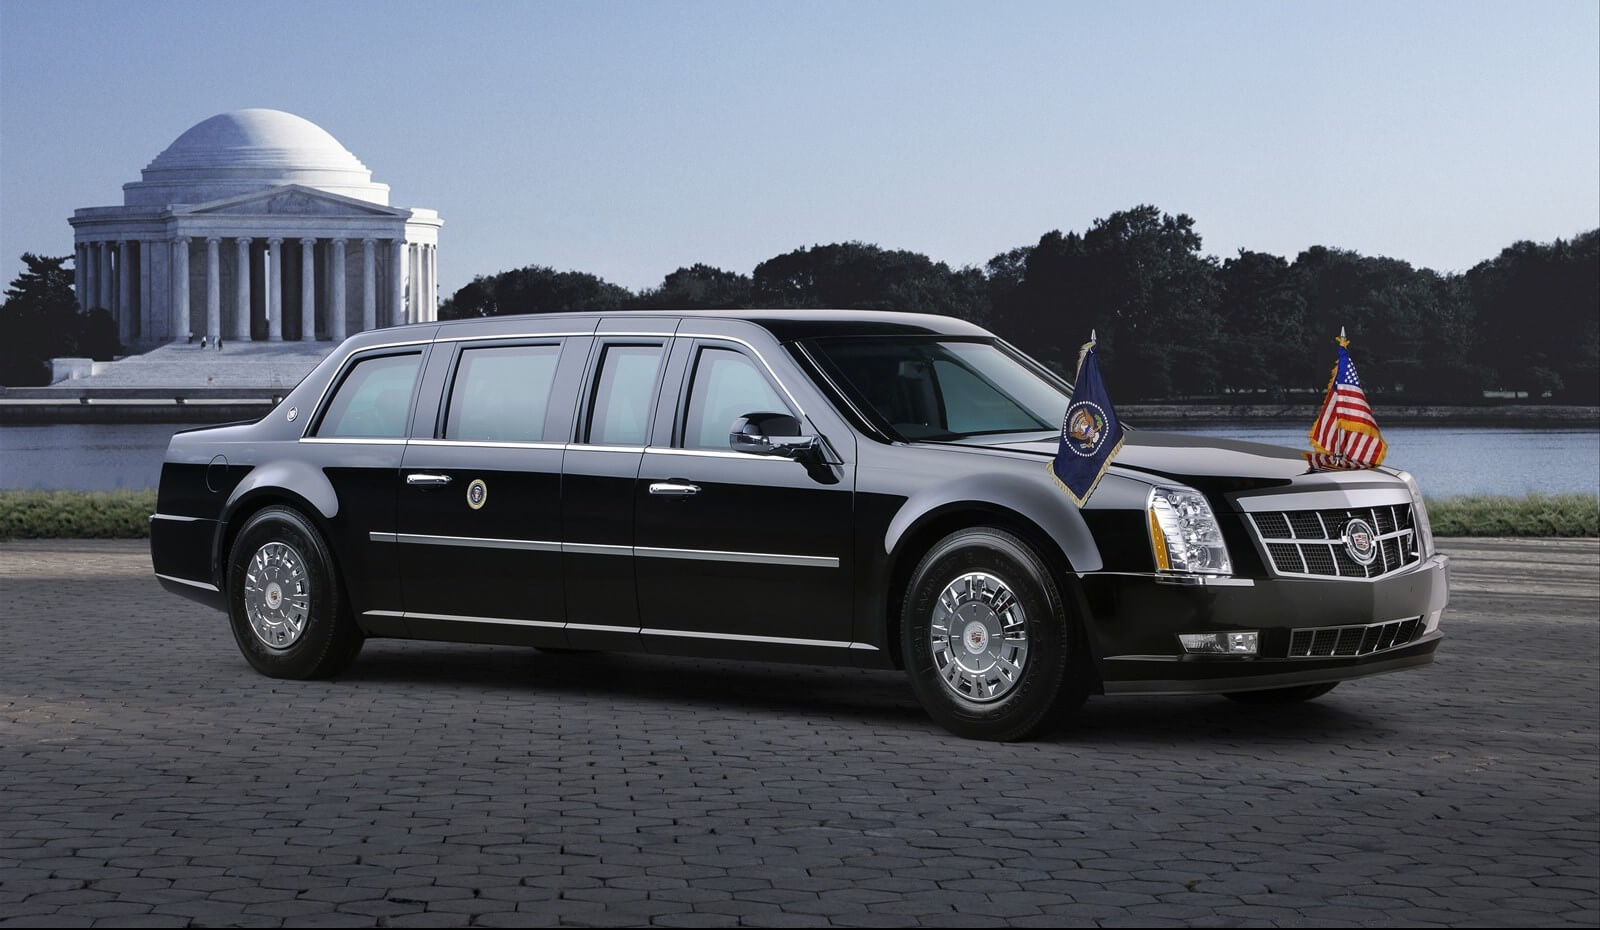 2009-Cadillac-Presidential-Limousine-Wallpaper-For-Desktop